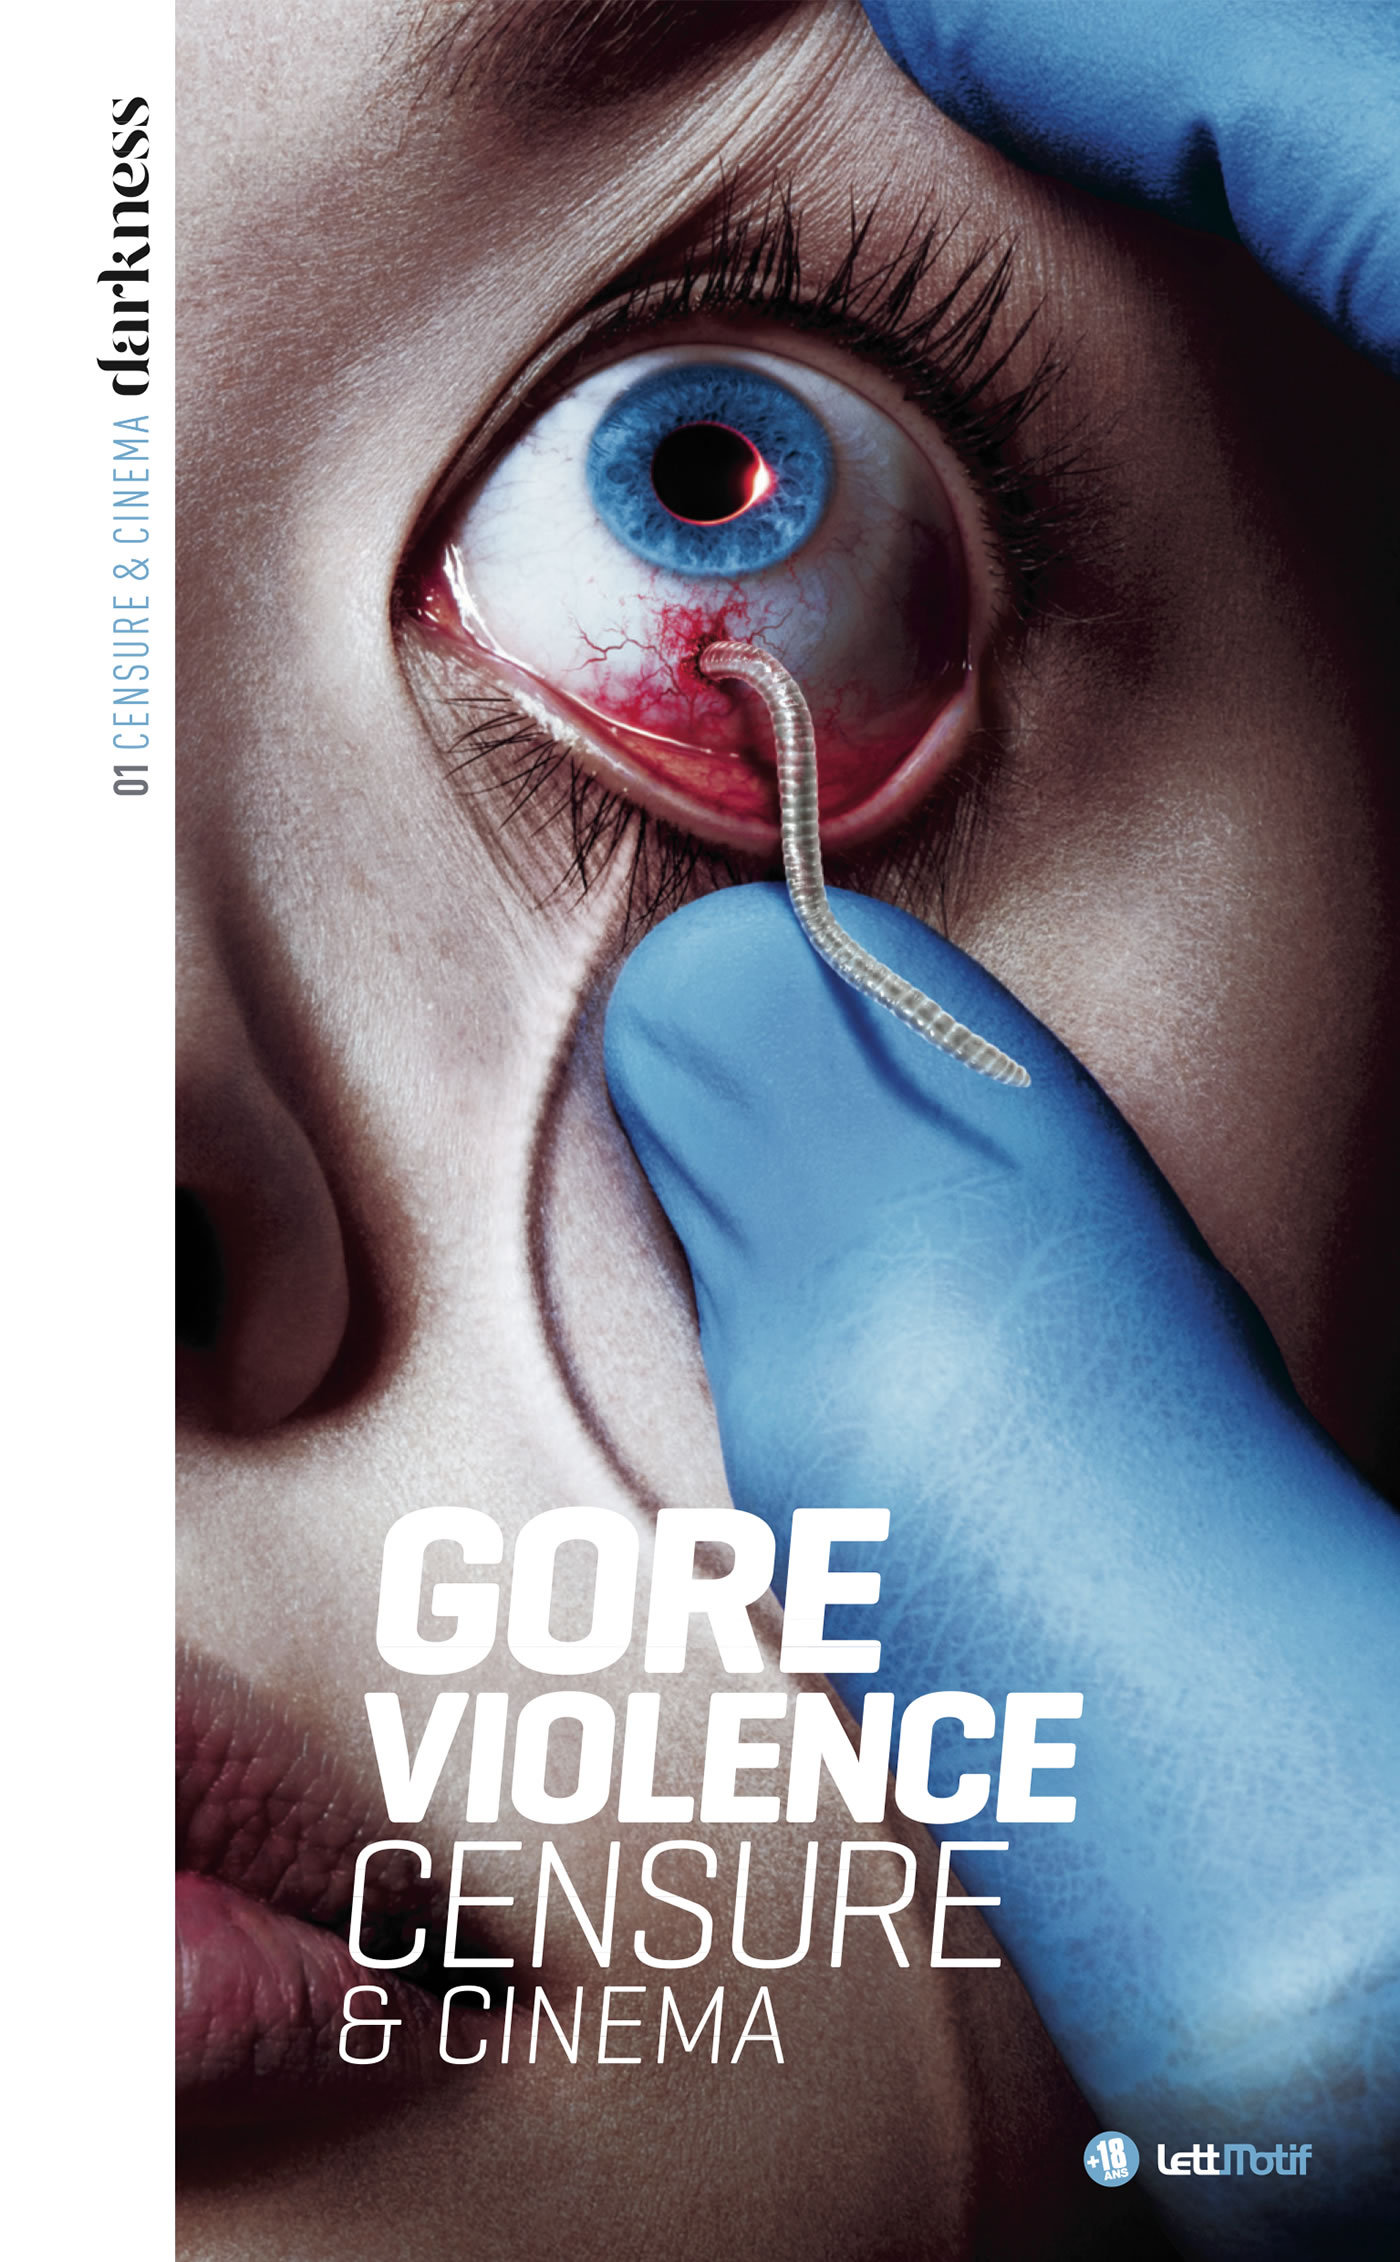 DARKNESS, CENSURE ET CINEMA (1. GORE & VIOLENCE)